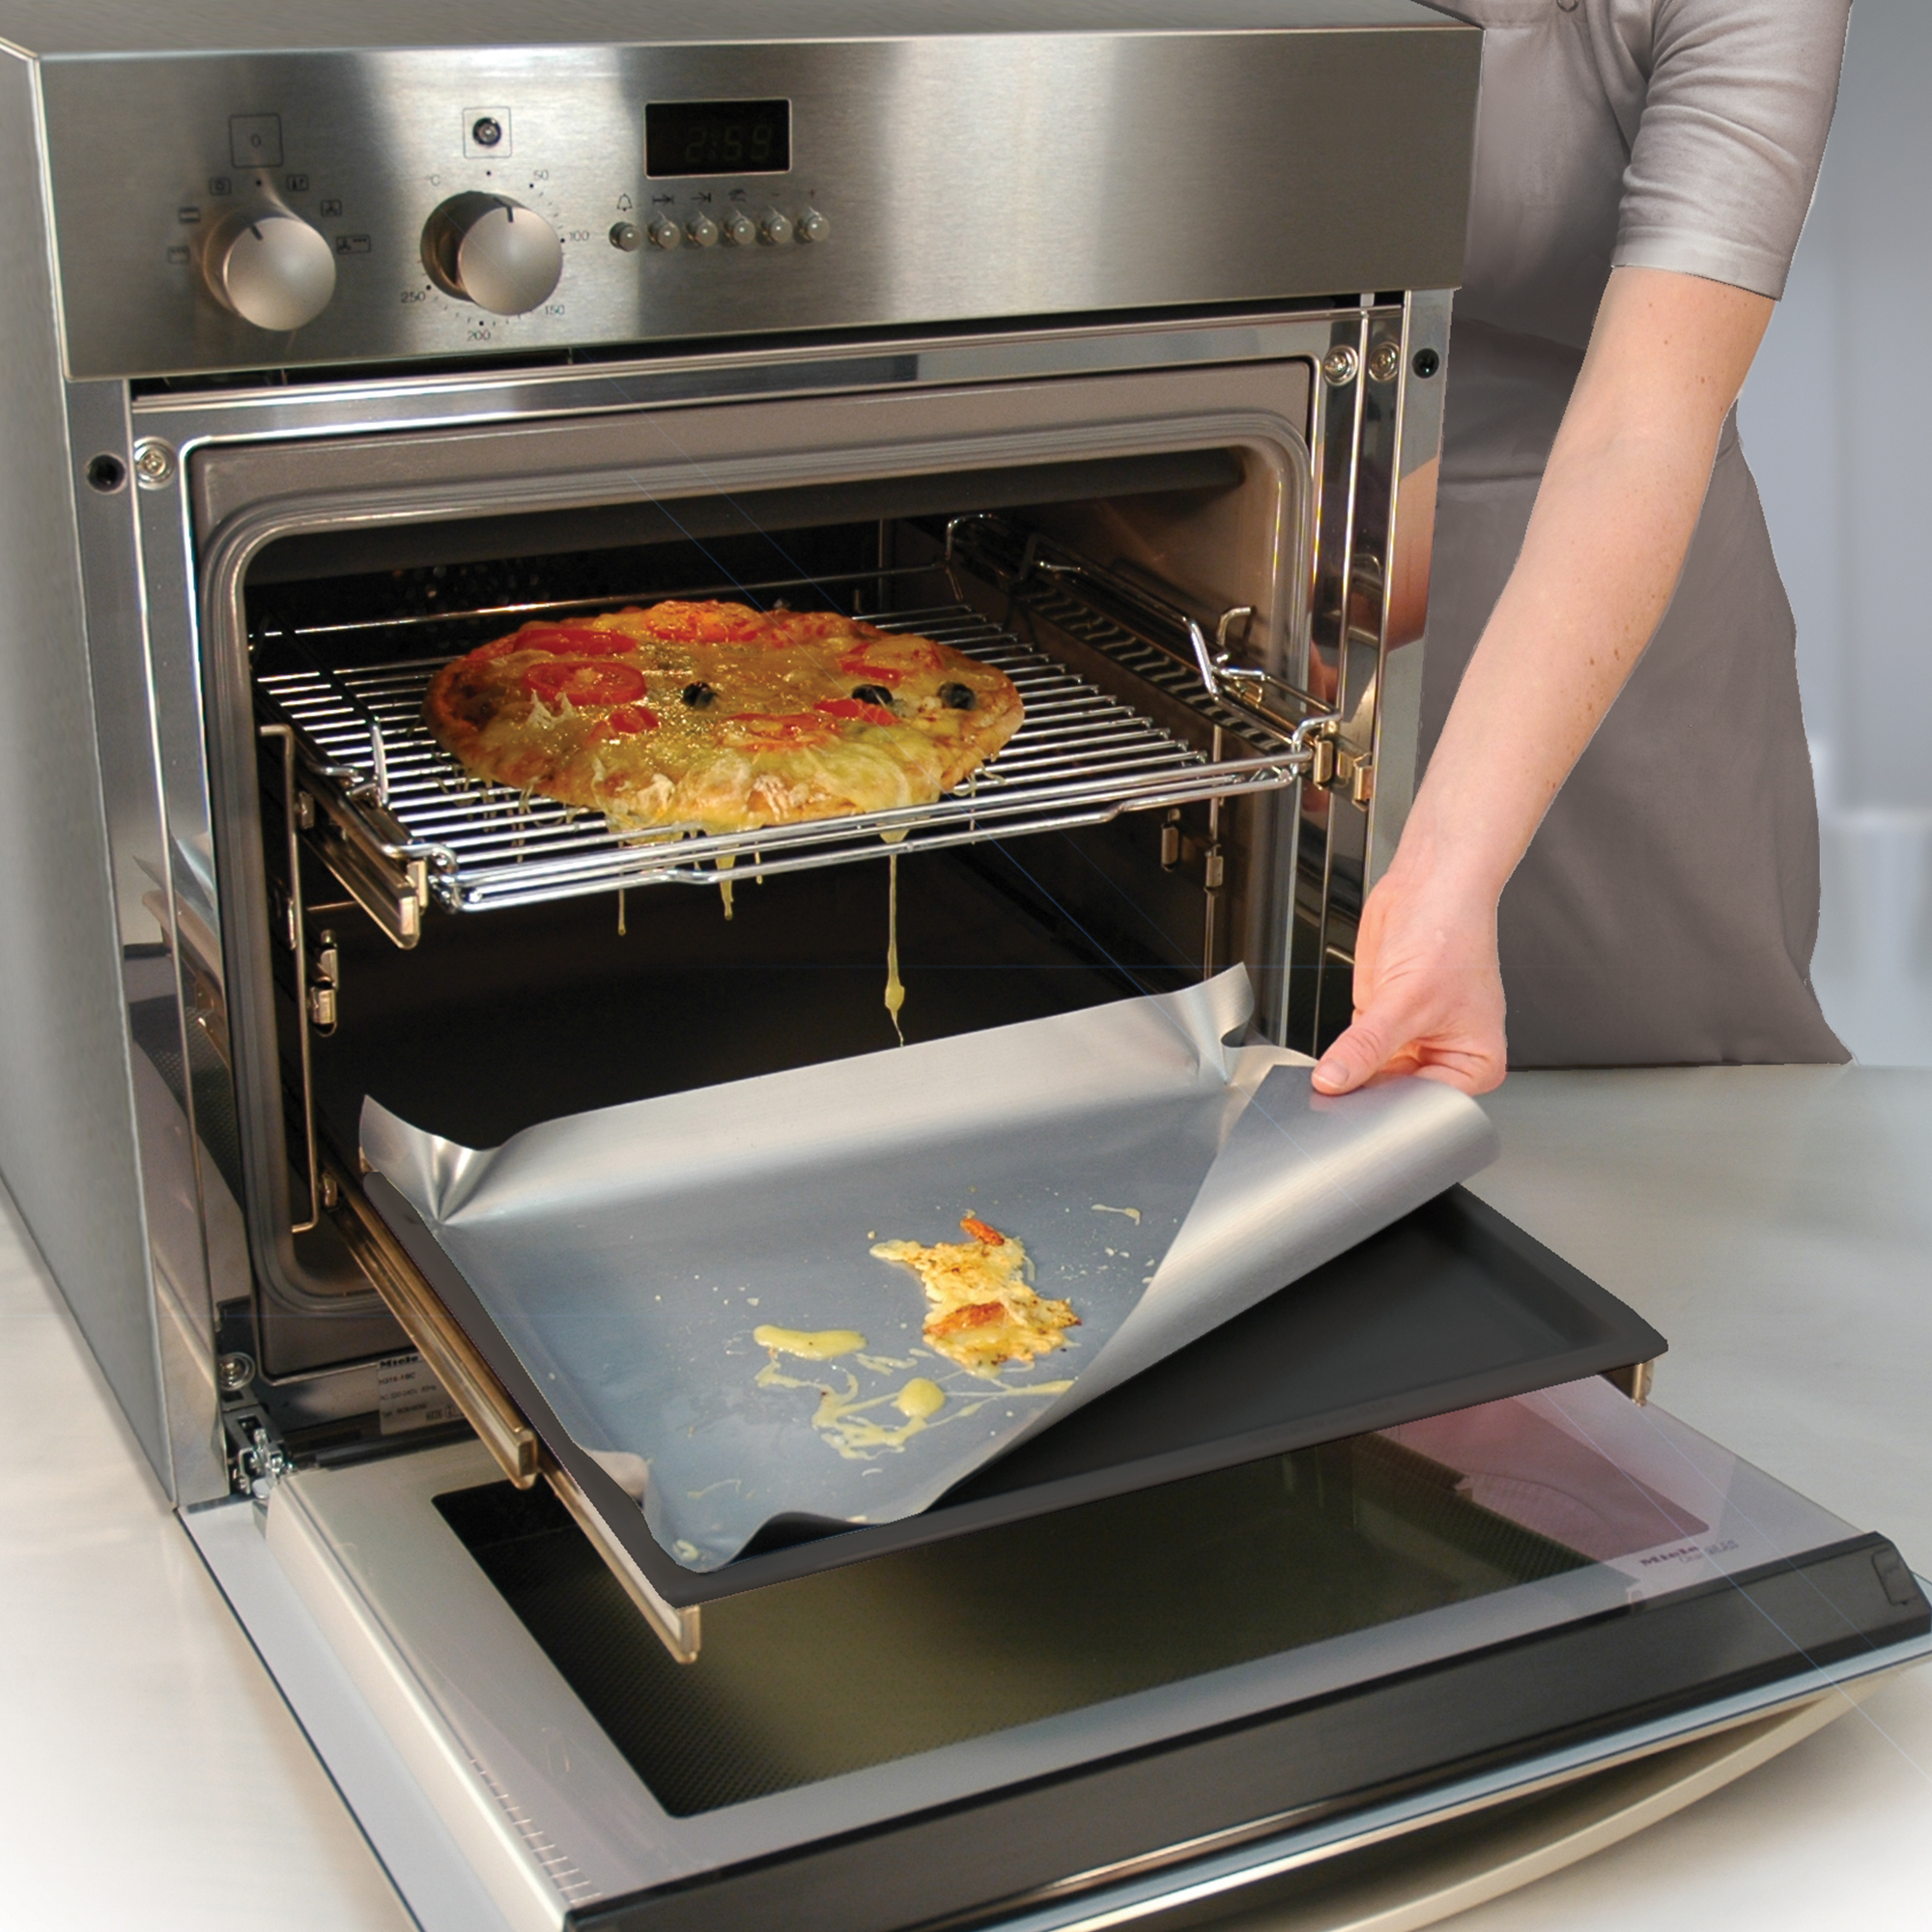 Pizzasteen Oven Search